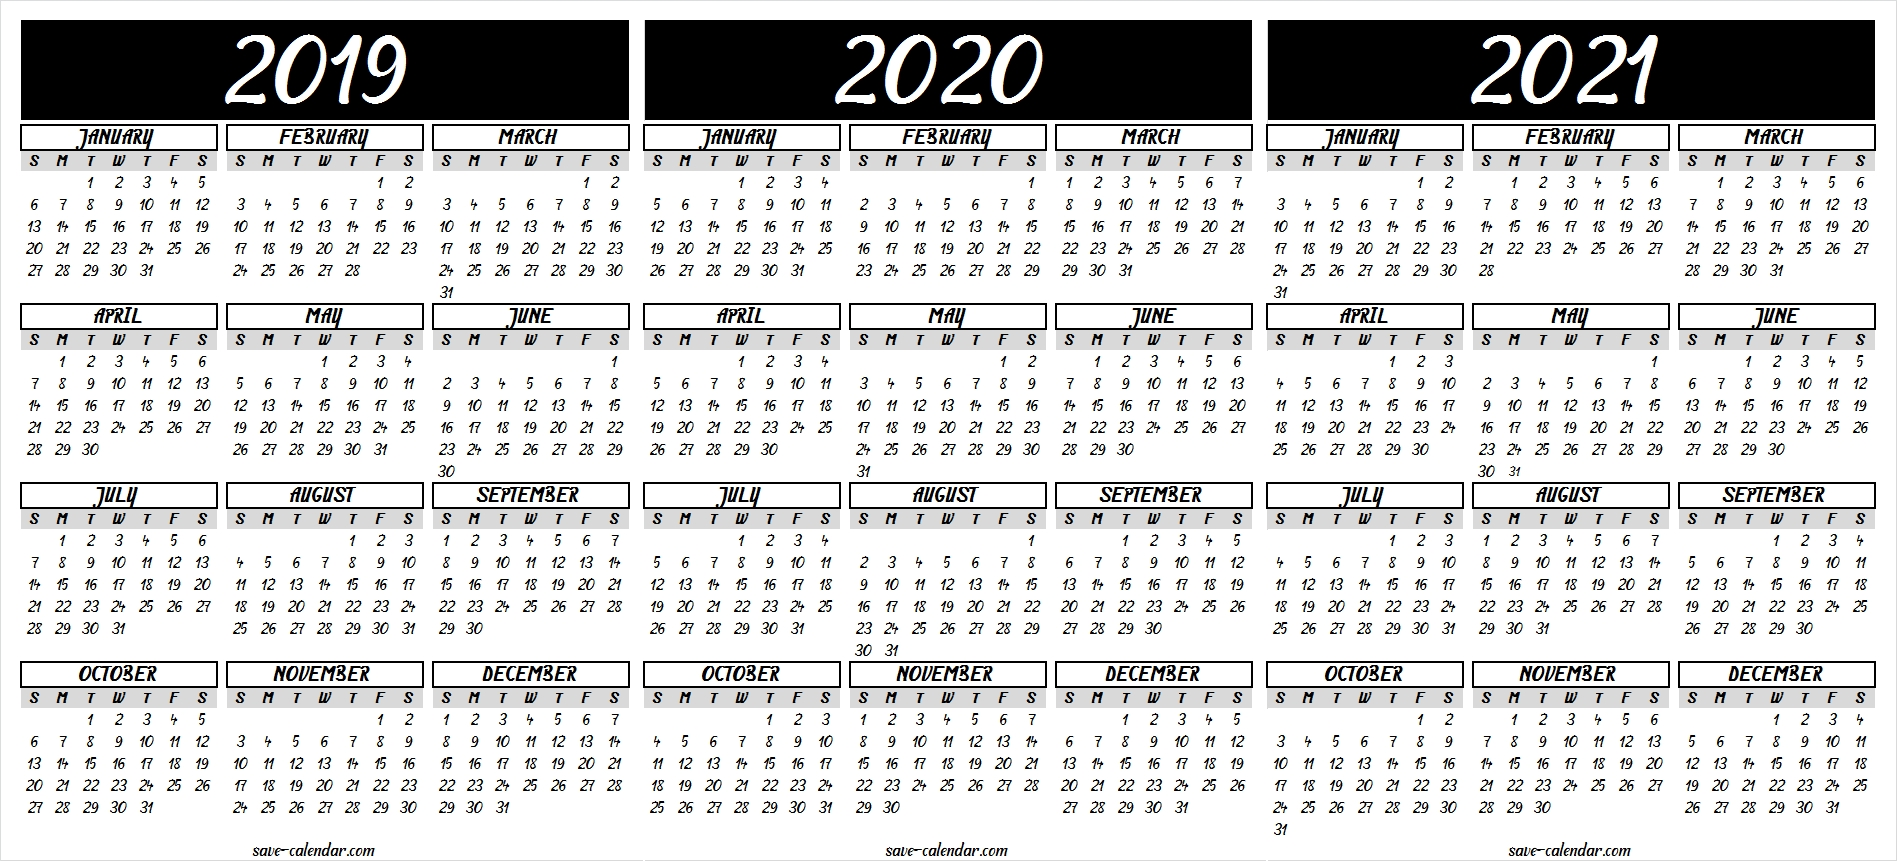 2019 2020 2021 Calendar Printable | 2021 Calendar, Templates throughout Printable Calendar Or 2020 And 2021 Monday To Sunday